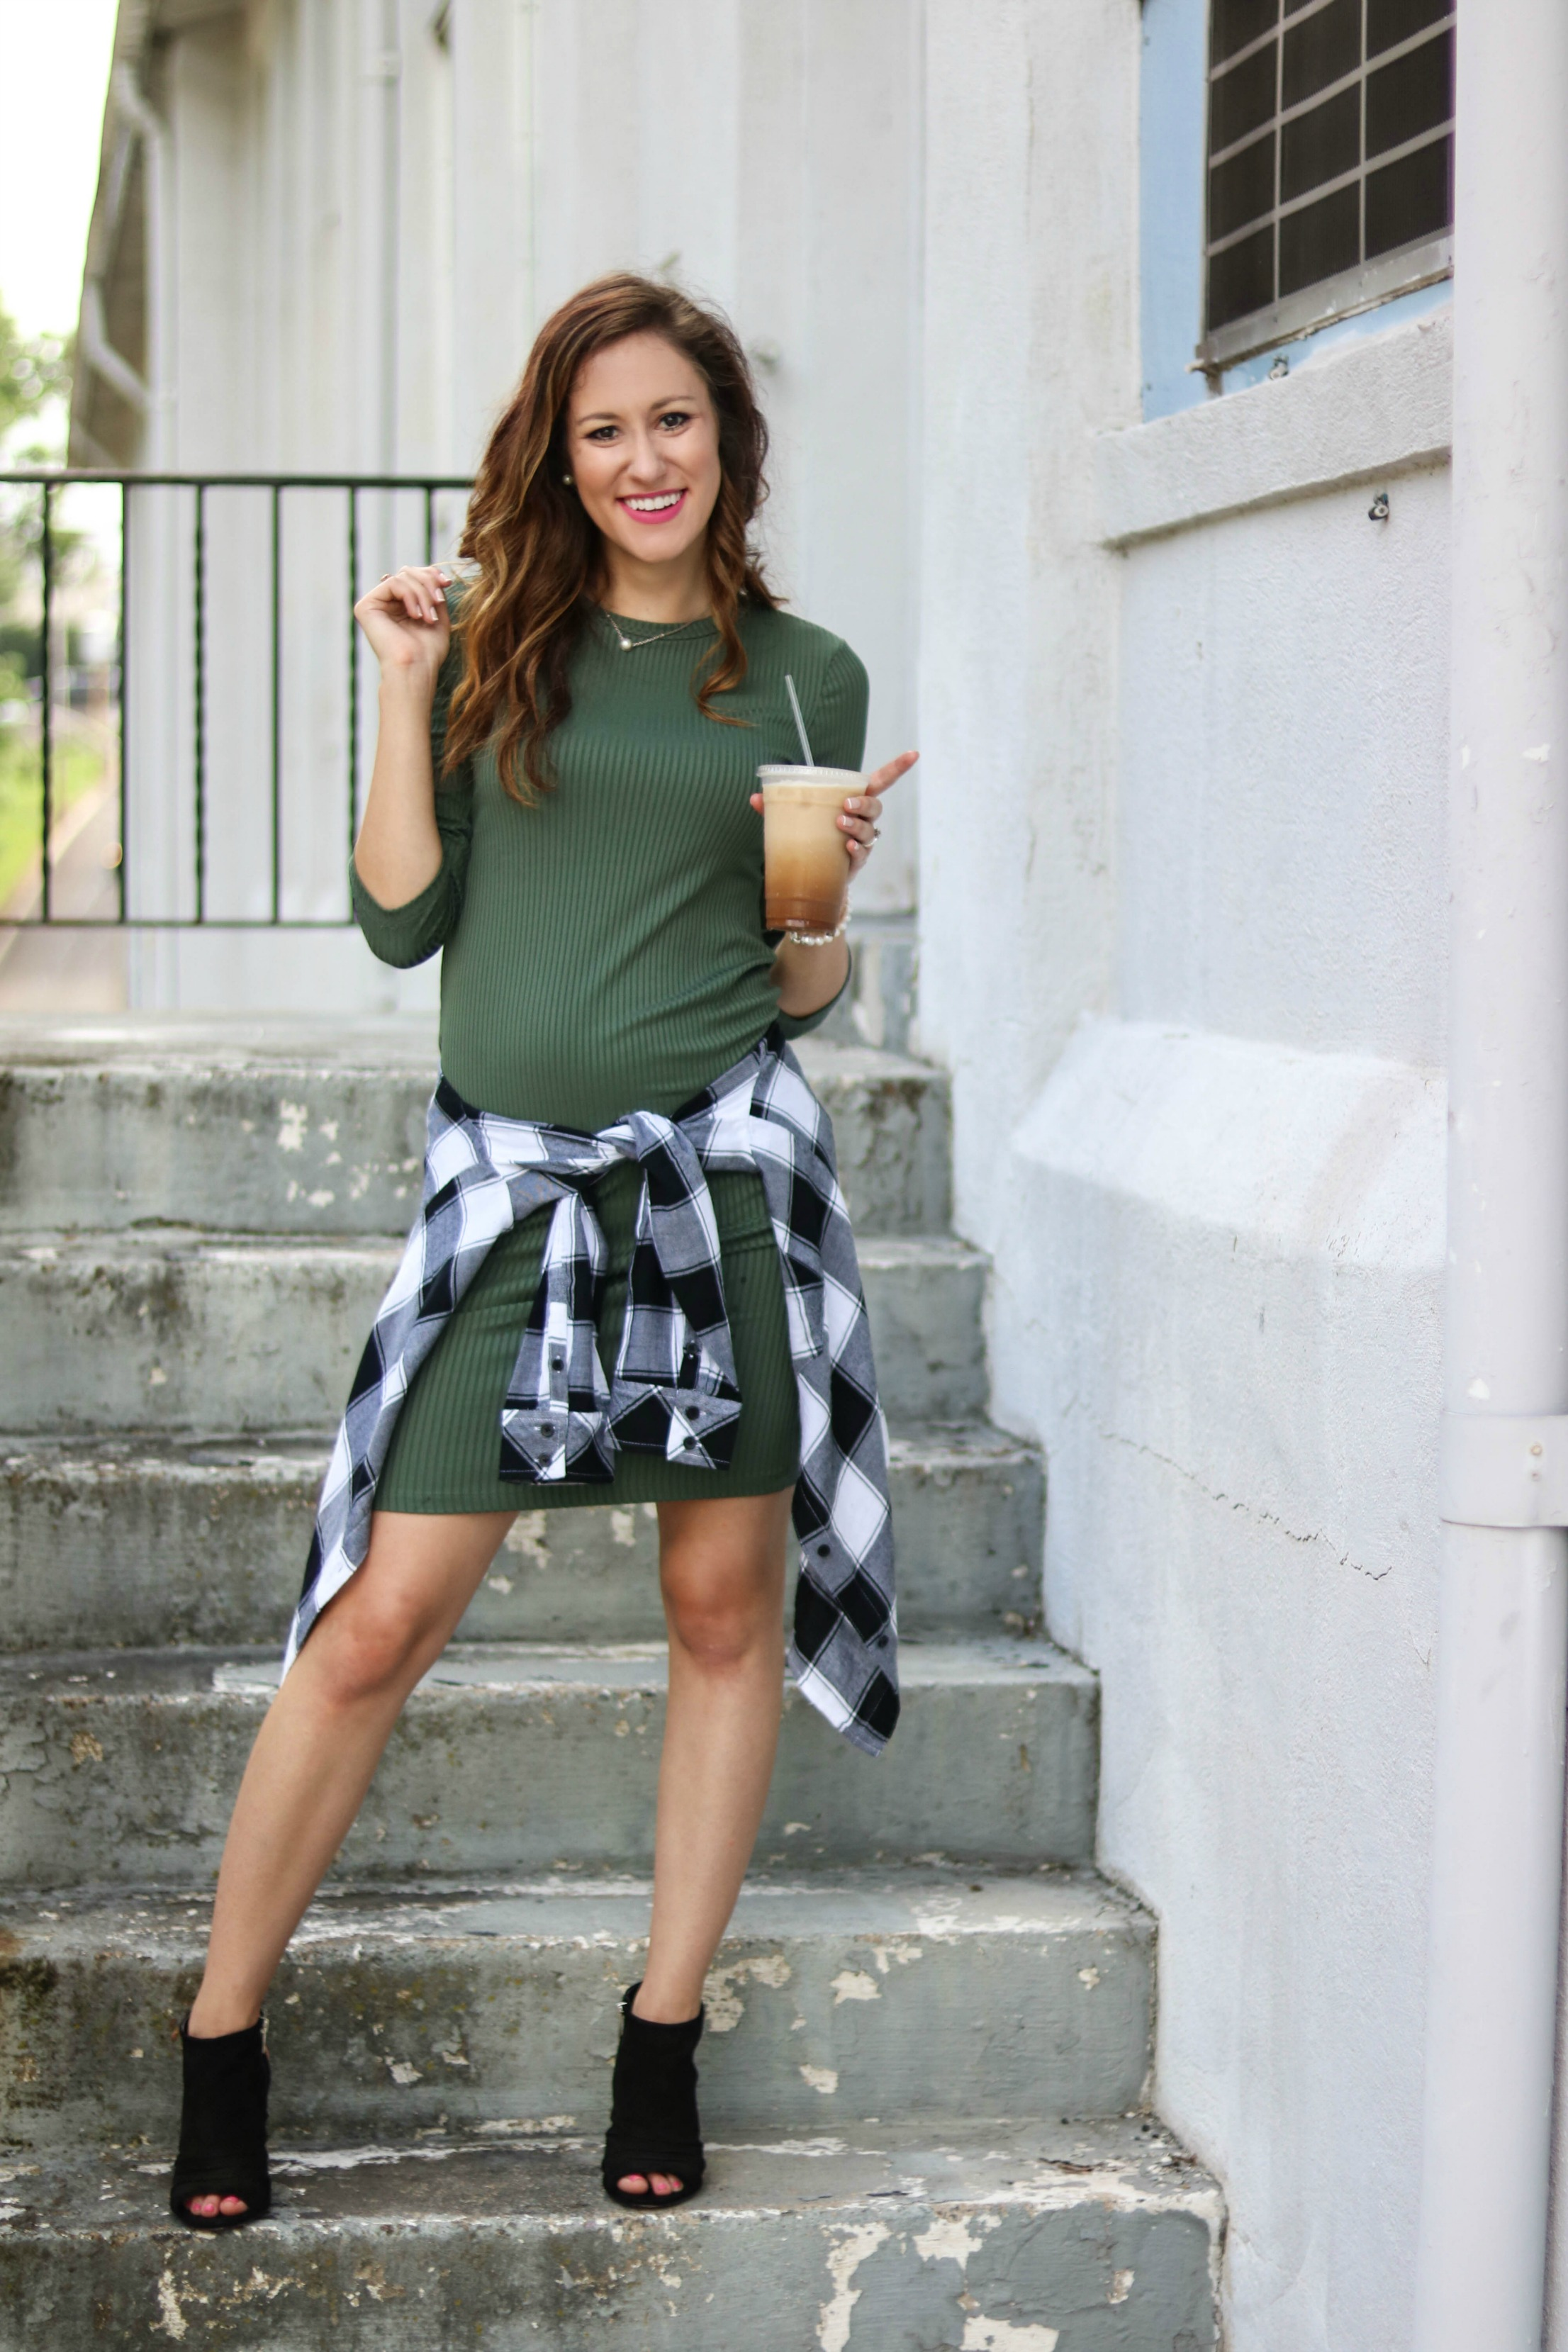 Want more versatility in your closet? Of course you do! Philadelphia style blogger, Erica of Coming Up Roses, is sharing 3 different ways to wear this versatile plaid flannel shirt that's currently on SALE! Good to wear now all the way through fall!